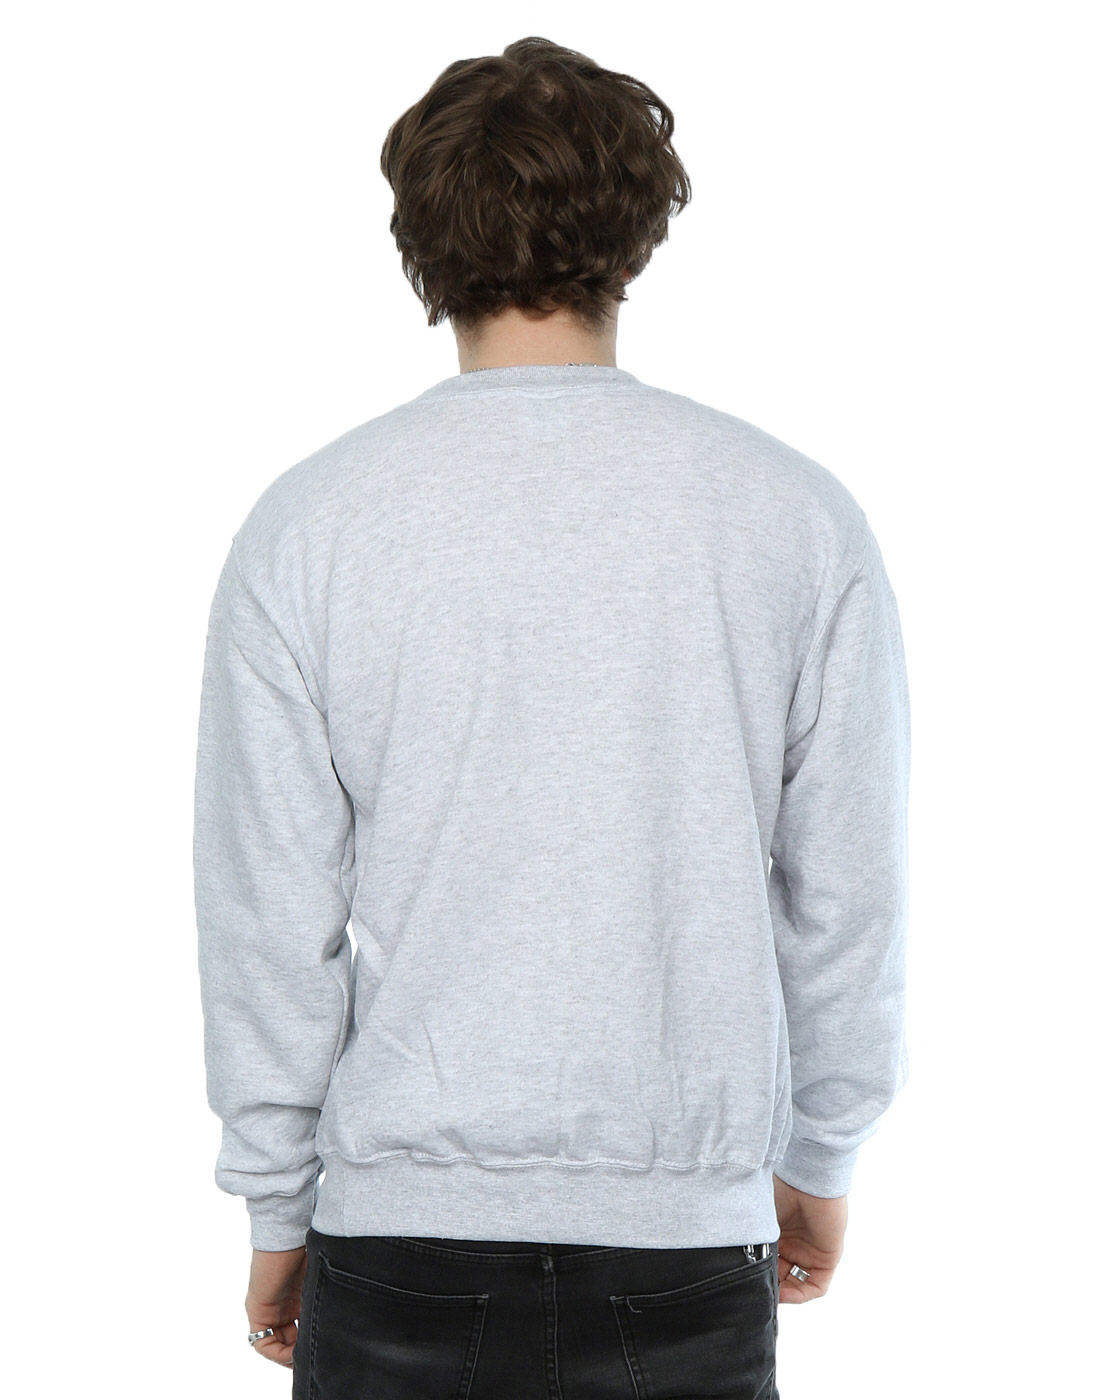 Disney-Homme-Inside-Out-Anger-The-Boss-Sweat-Shirt